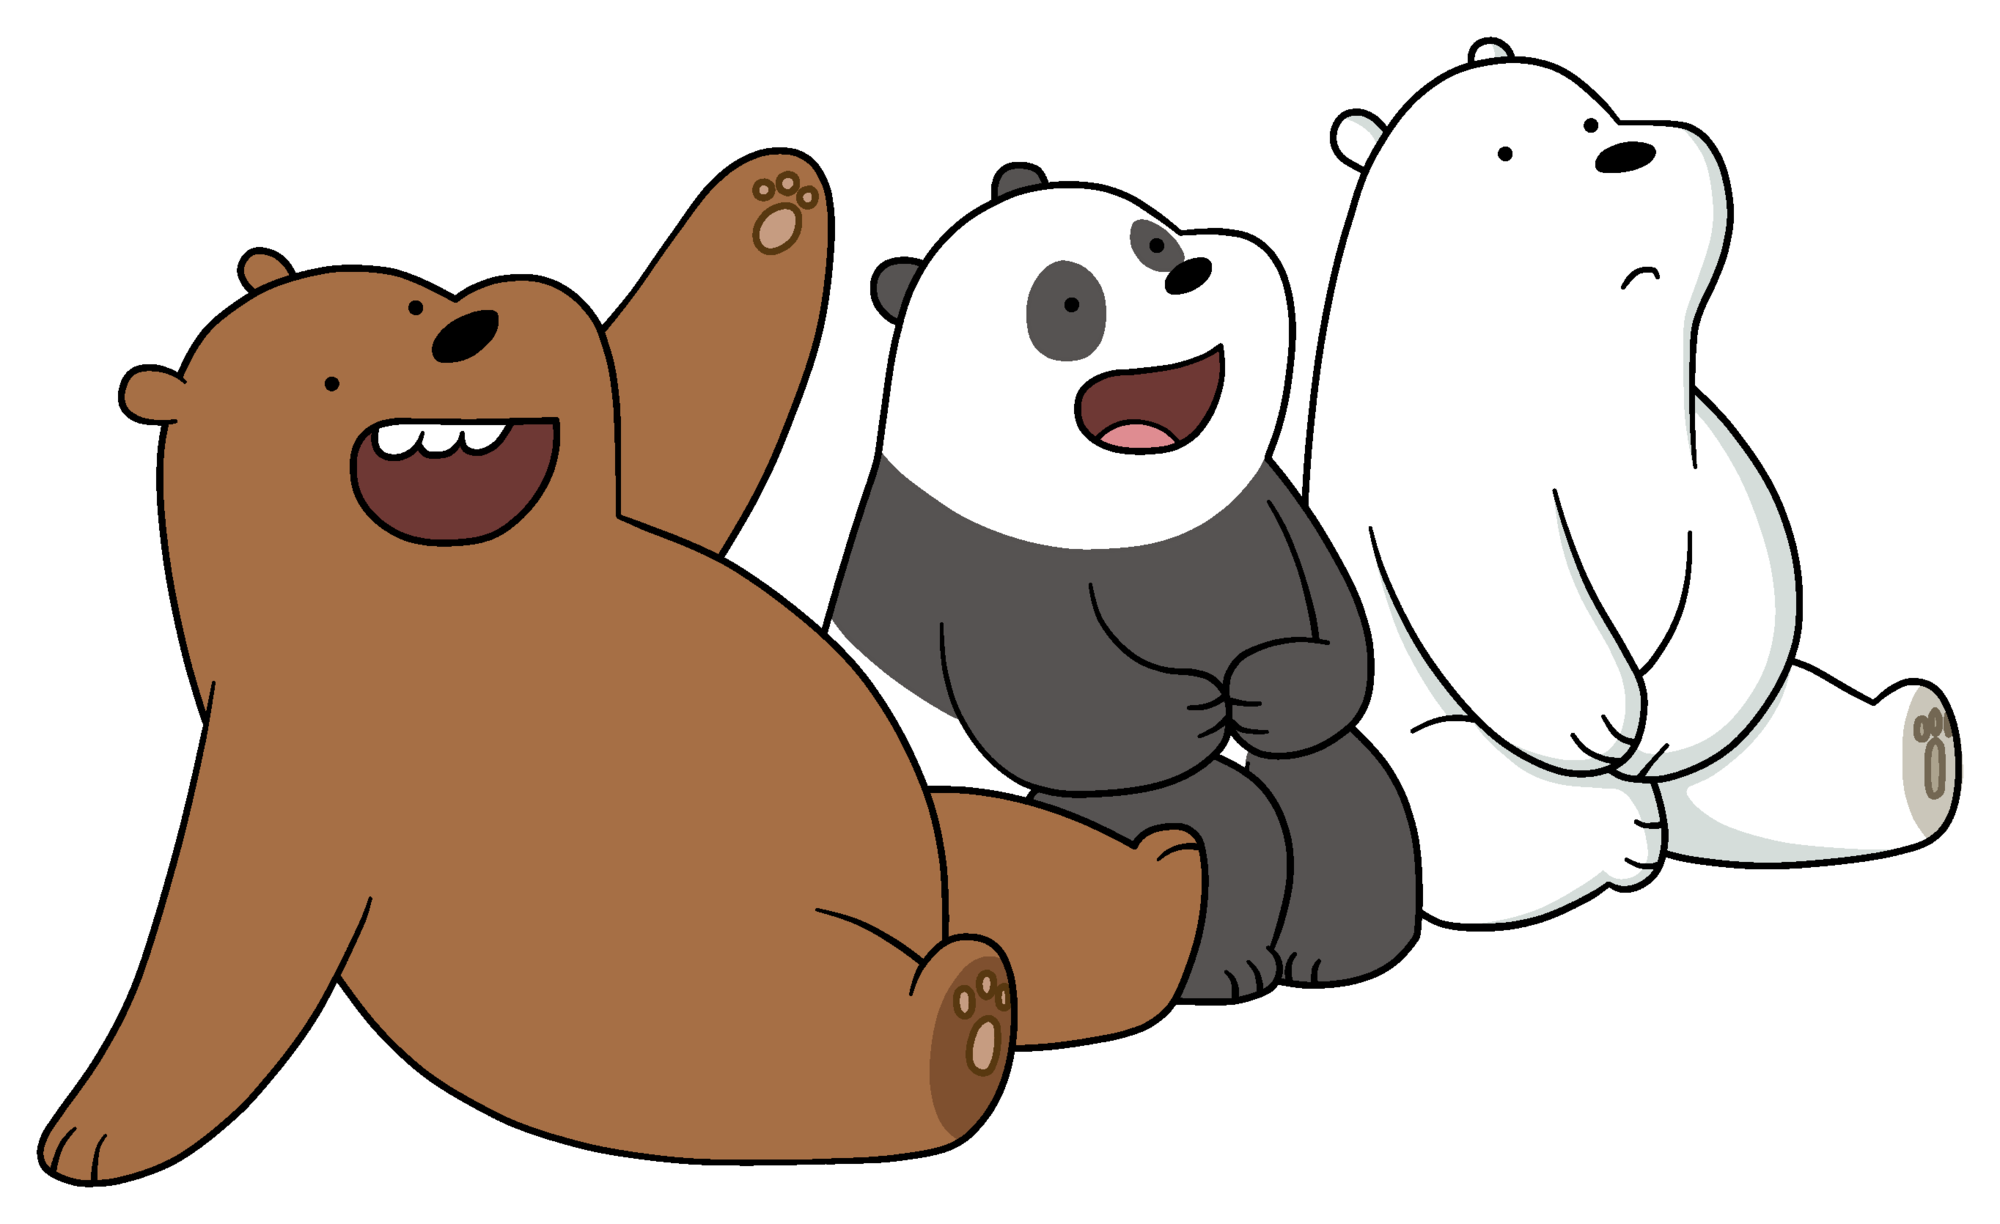 Bear running into truck clipart stock The Bears | We Bare Bears Wiki | FANDOM powered by Wikia stock